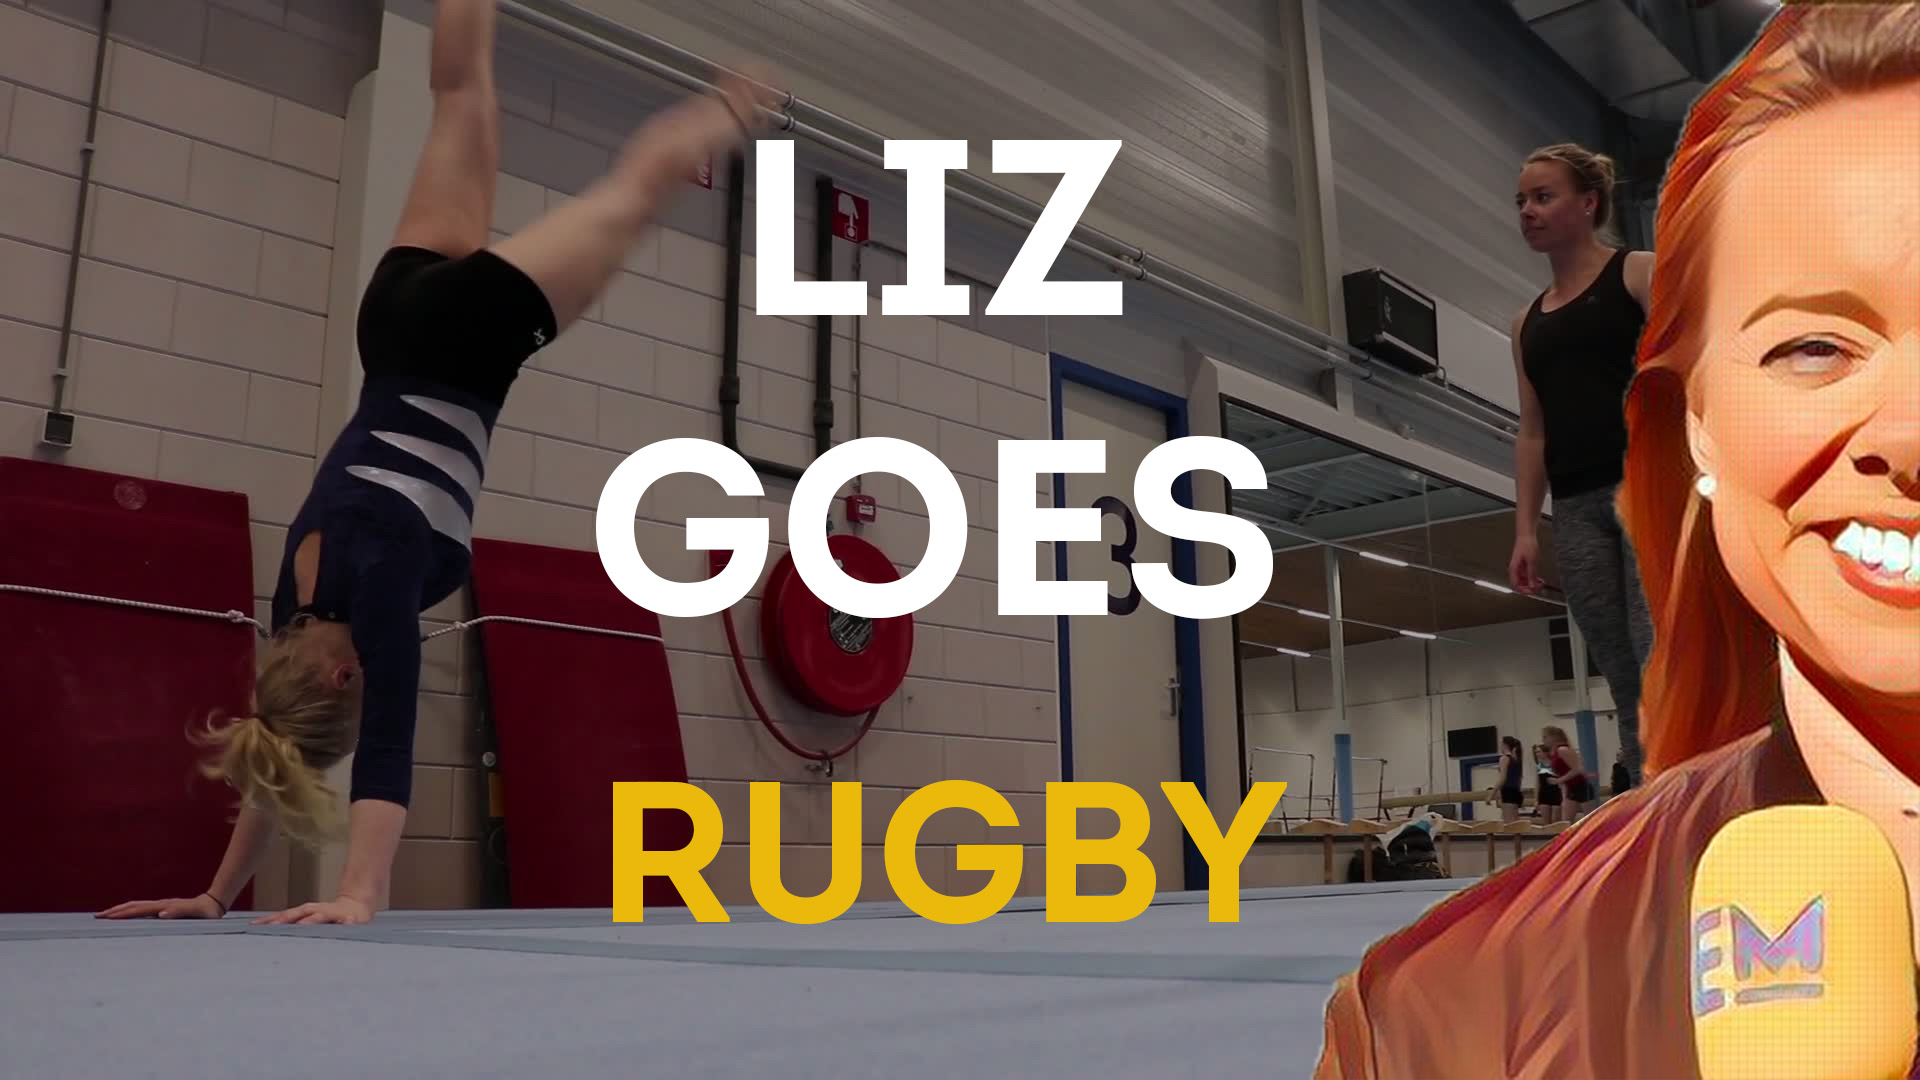 liz goes rugby